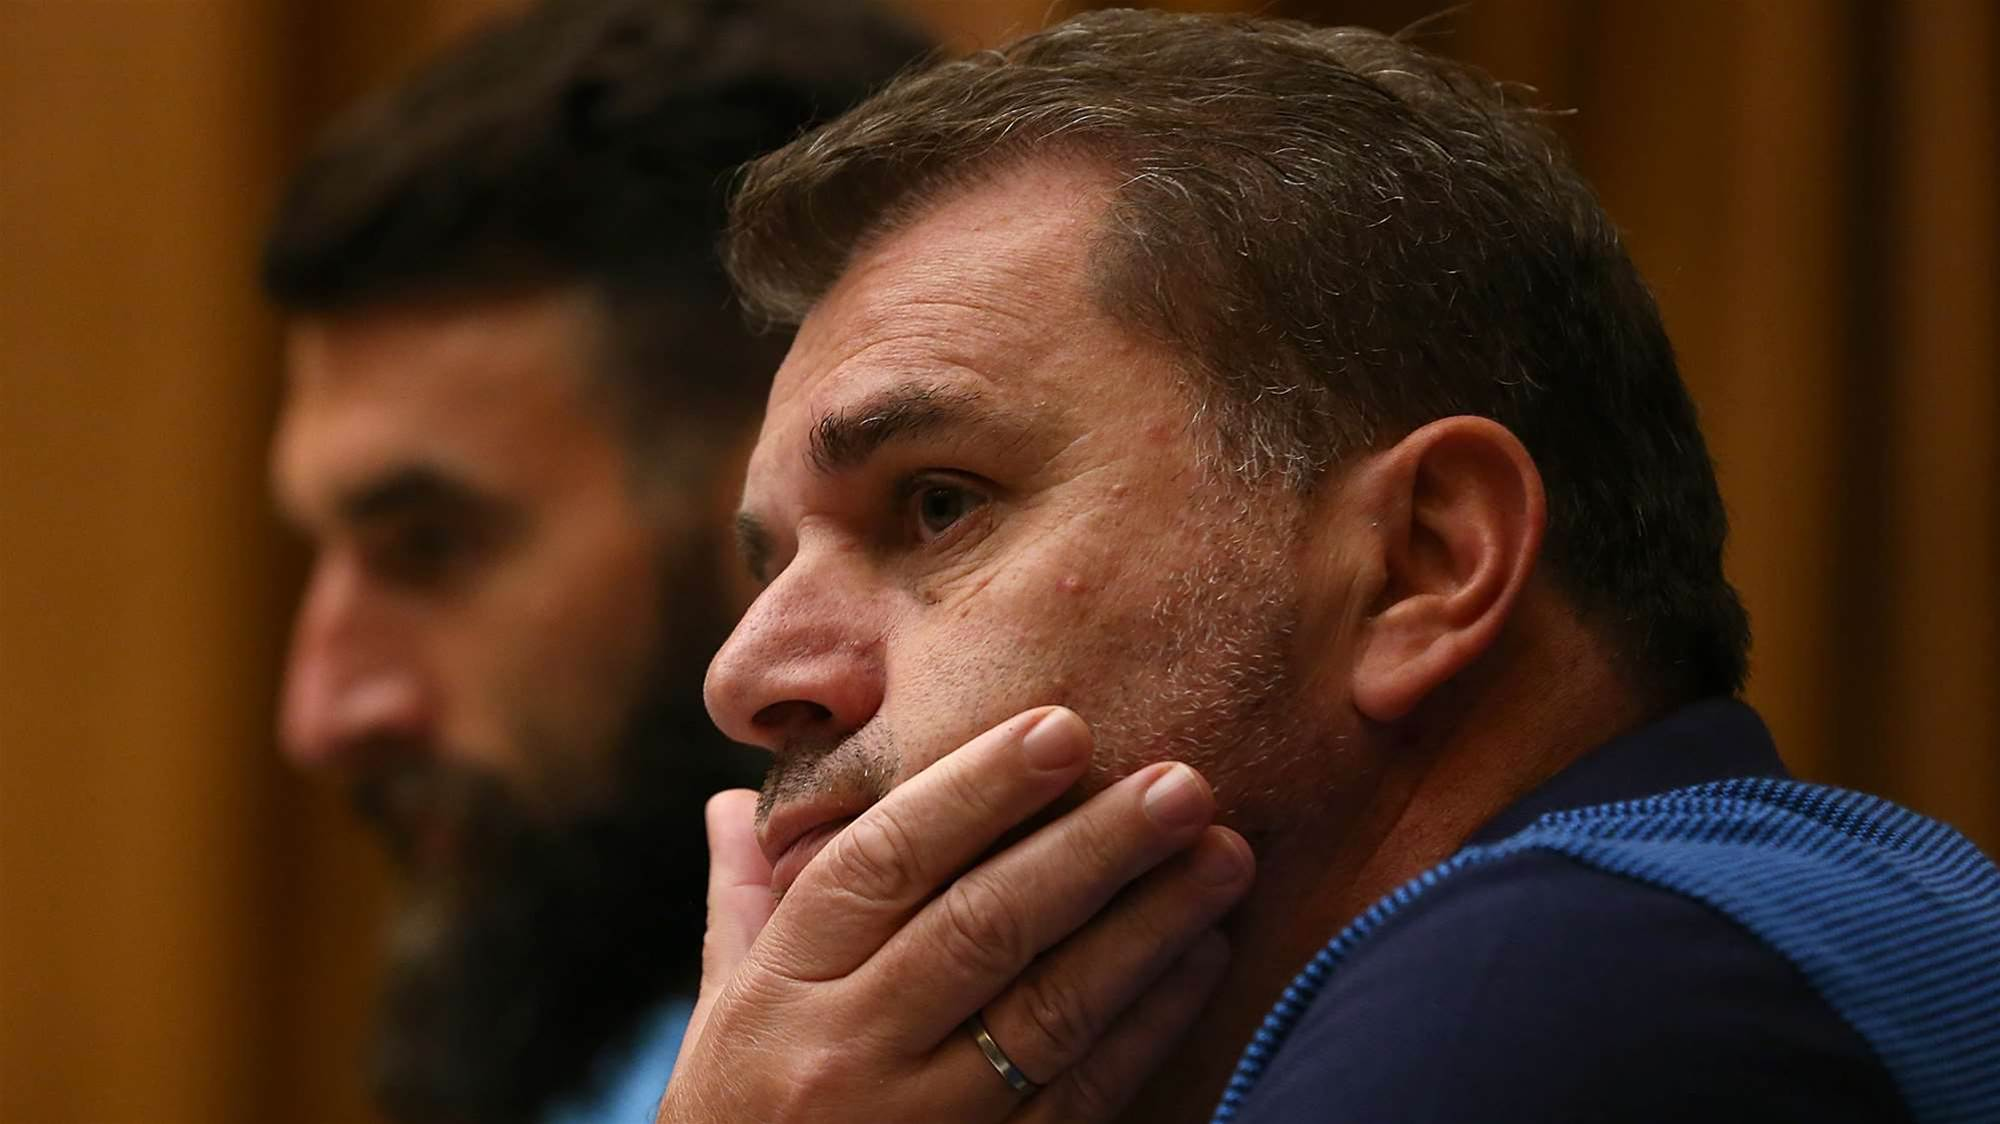 Ange: Haters only make us stronger